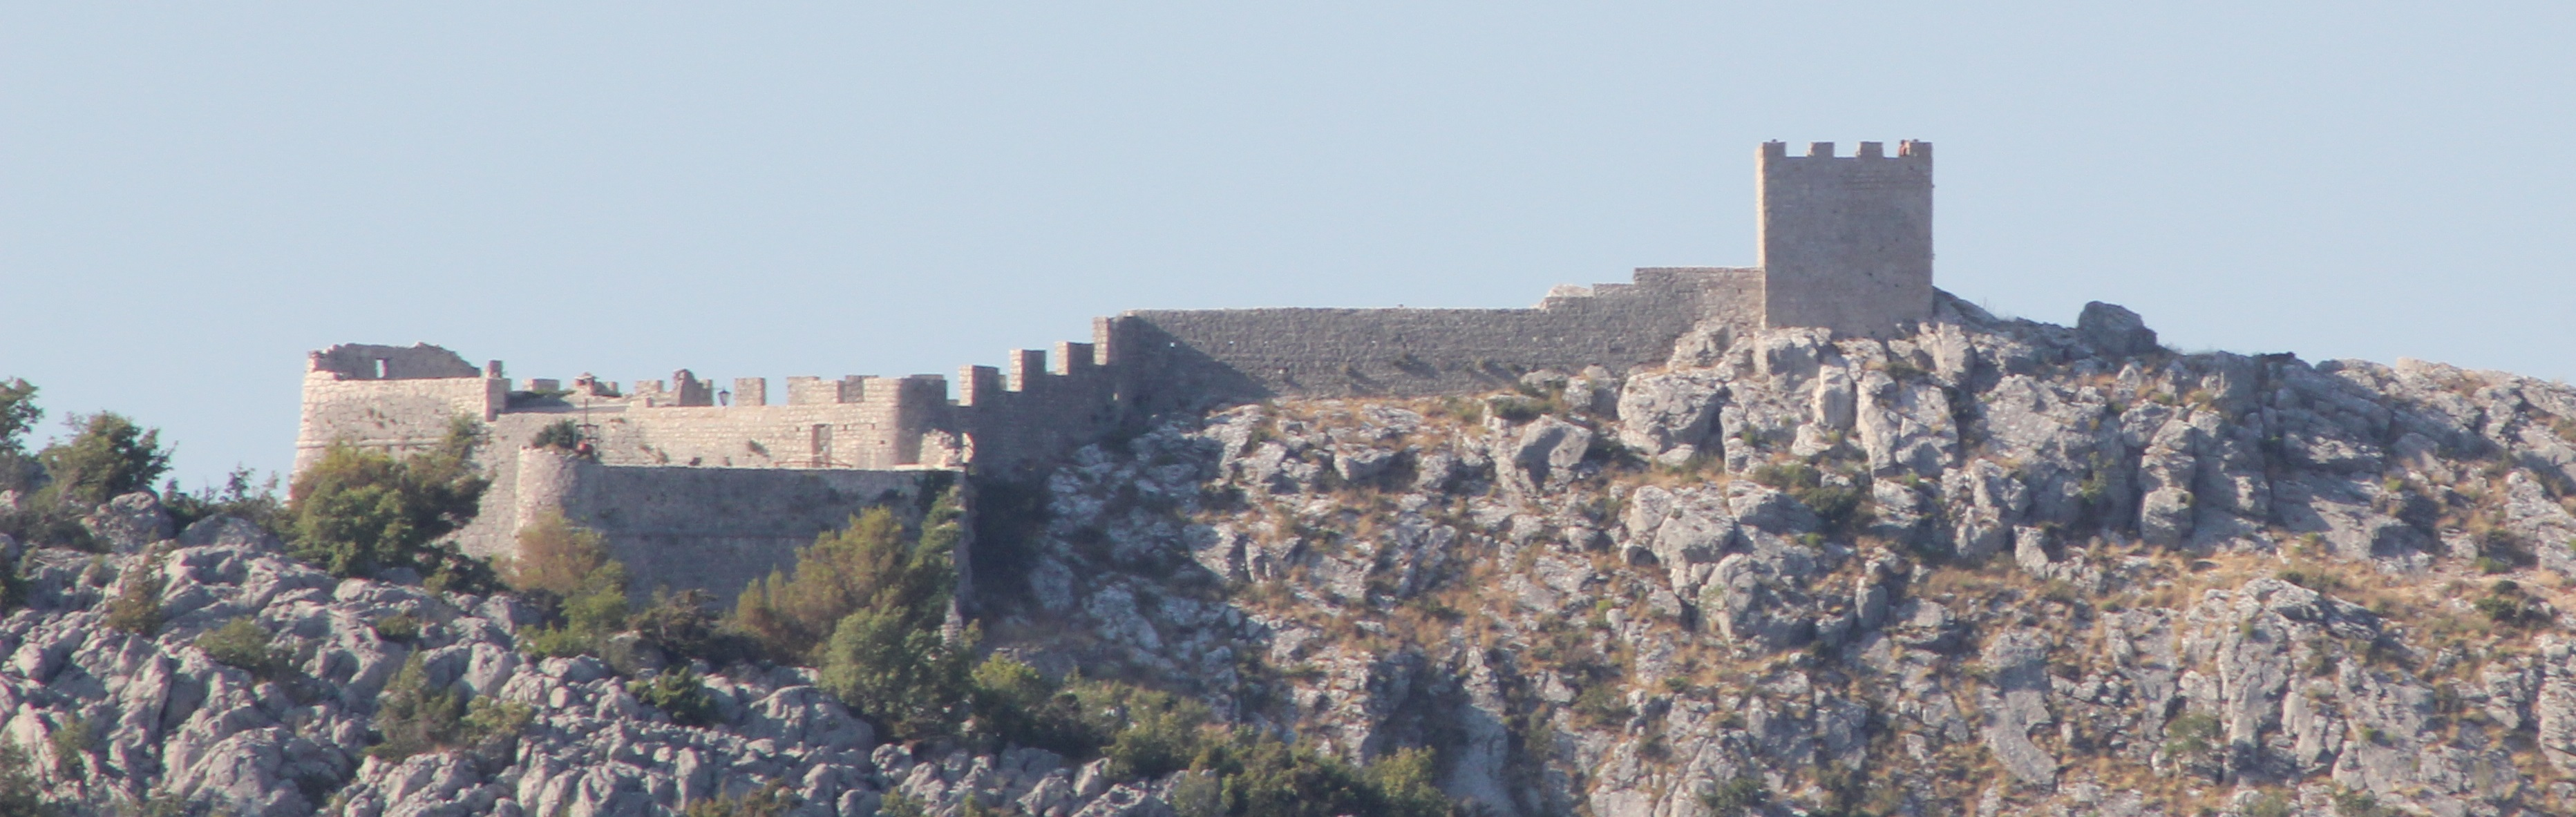 Visible on a ridge of the Omiška Dinara mountain on the other side of the valley is the 15th century Starigrad Fortress (Fortica), but this telephoto view was as close as we would be getting that day…